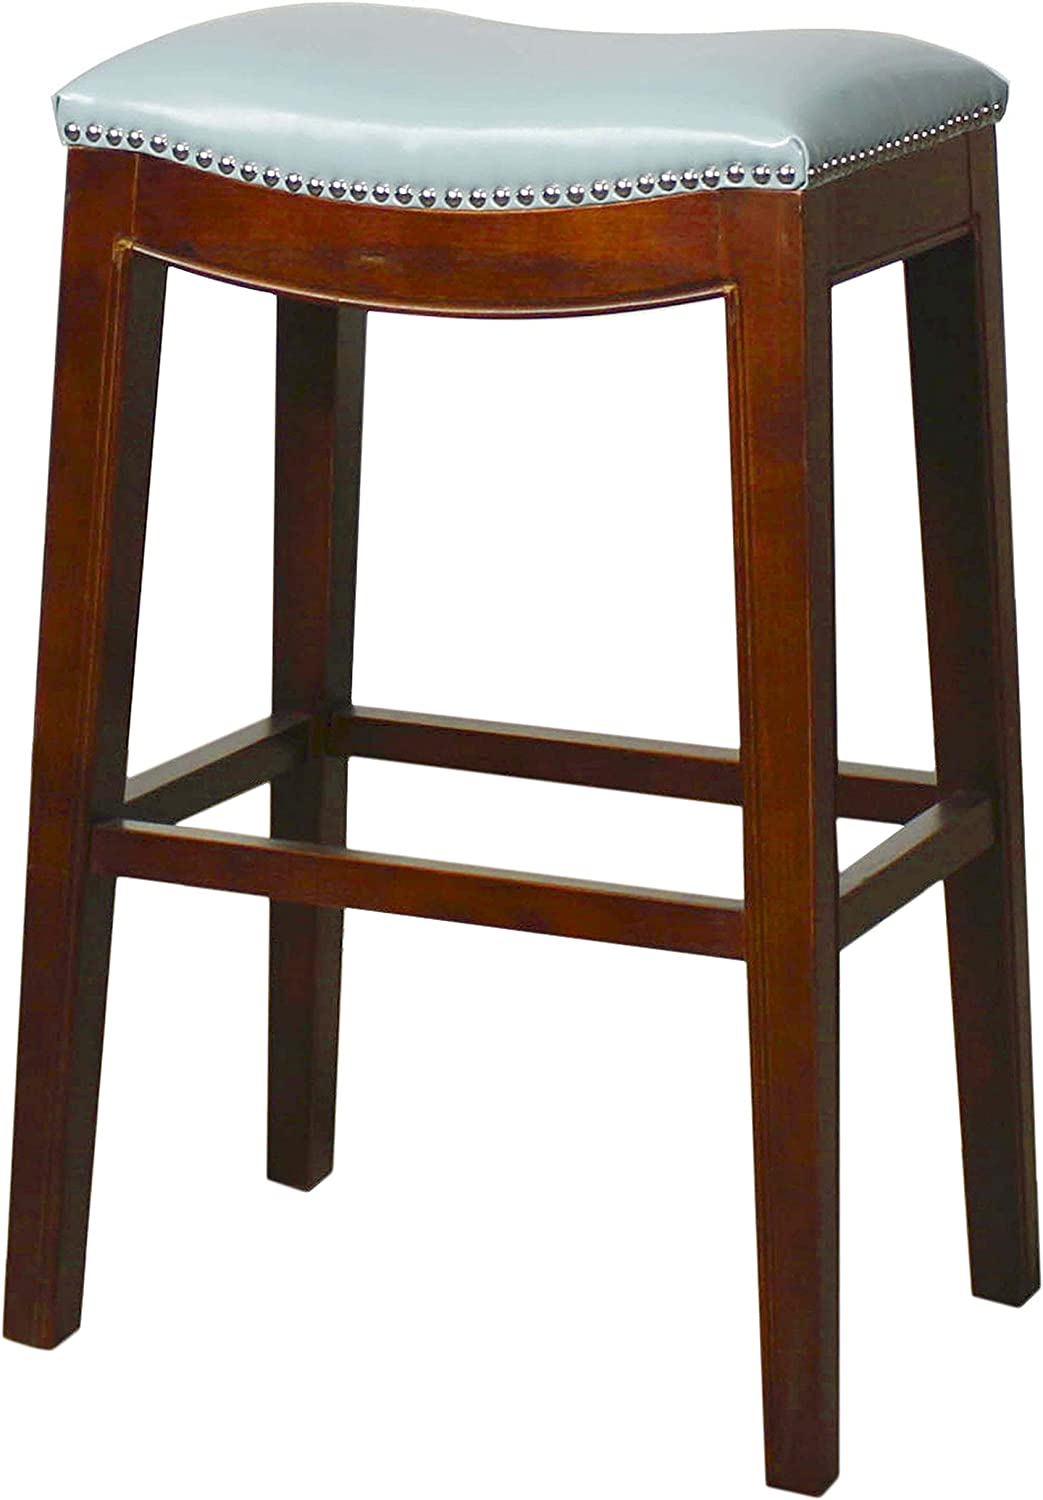 New Pacific Direct Elmo Bonded Leather Bar Stool, Blue